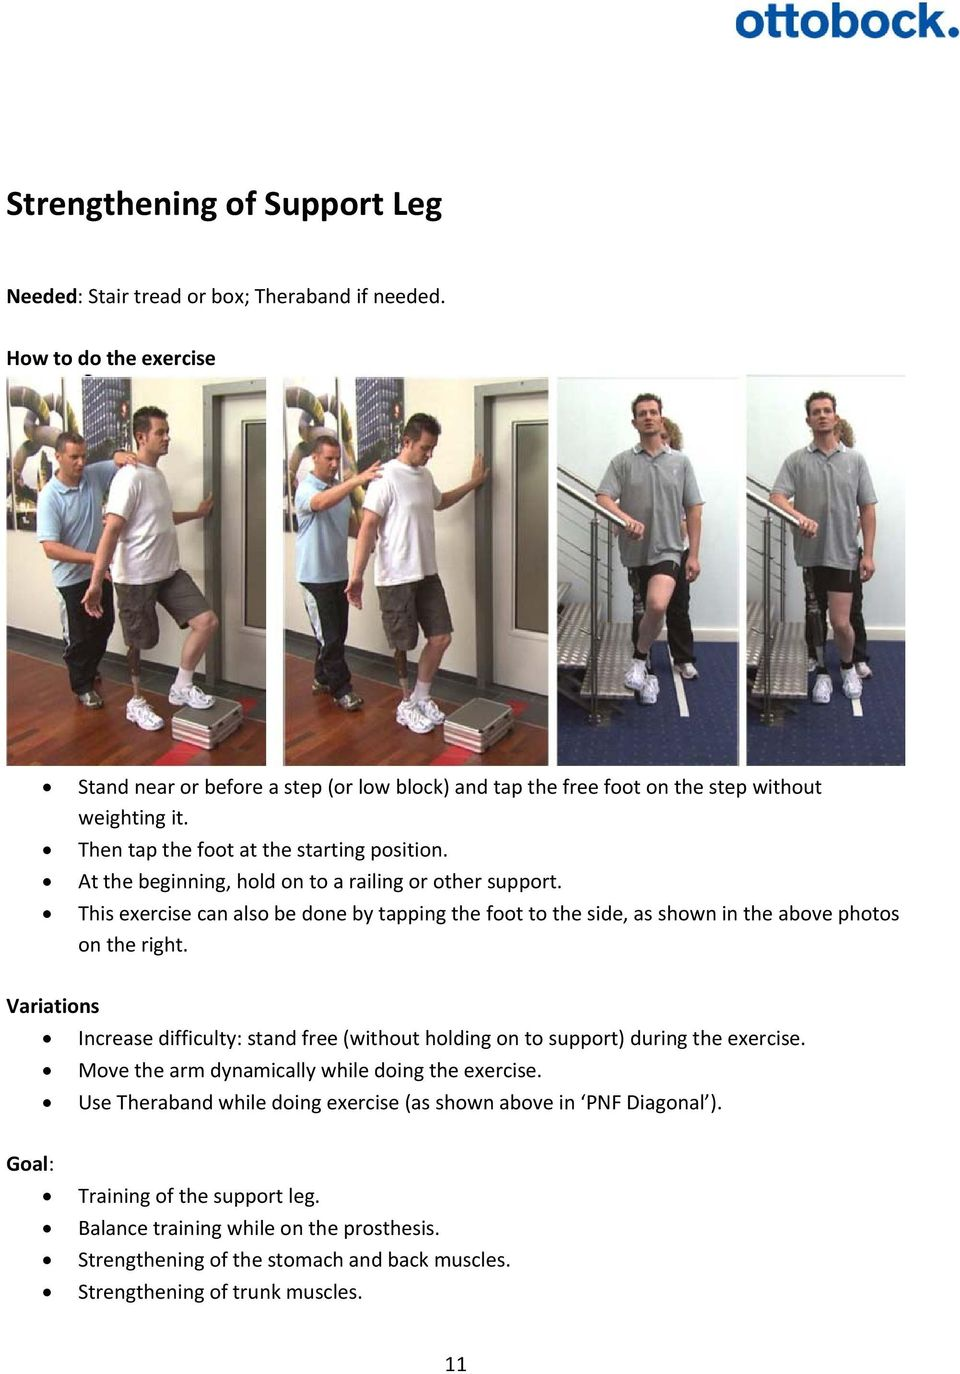 This exercise can also be done by tapping the foot to the side, as shown in the above photos on the right.